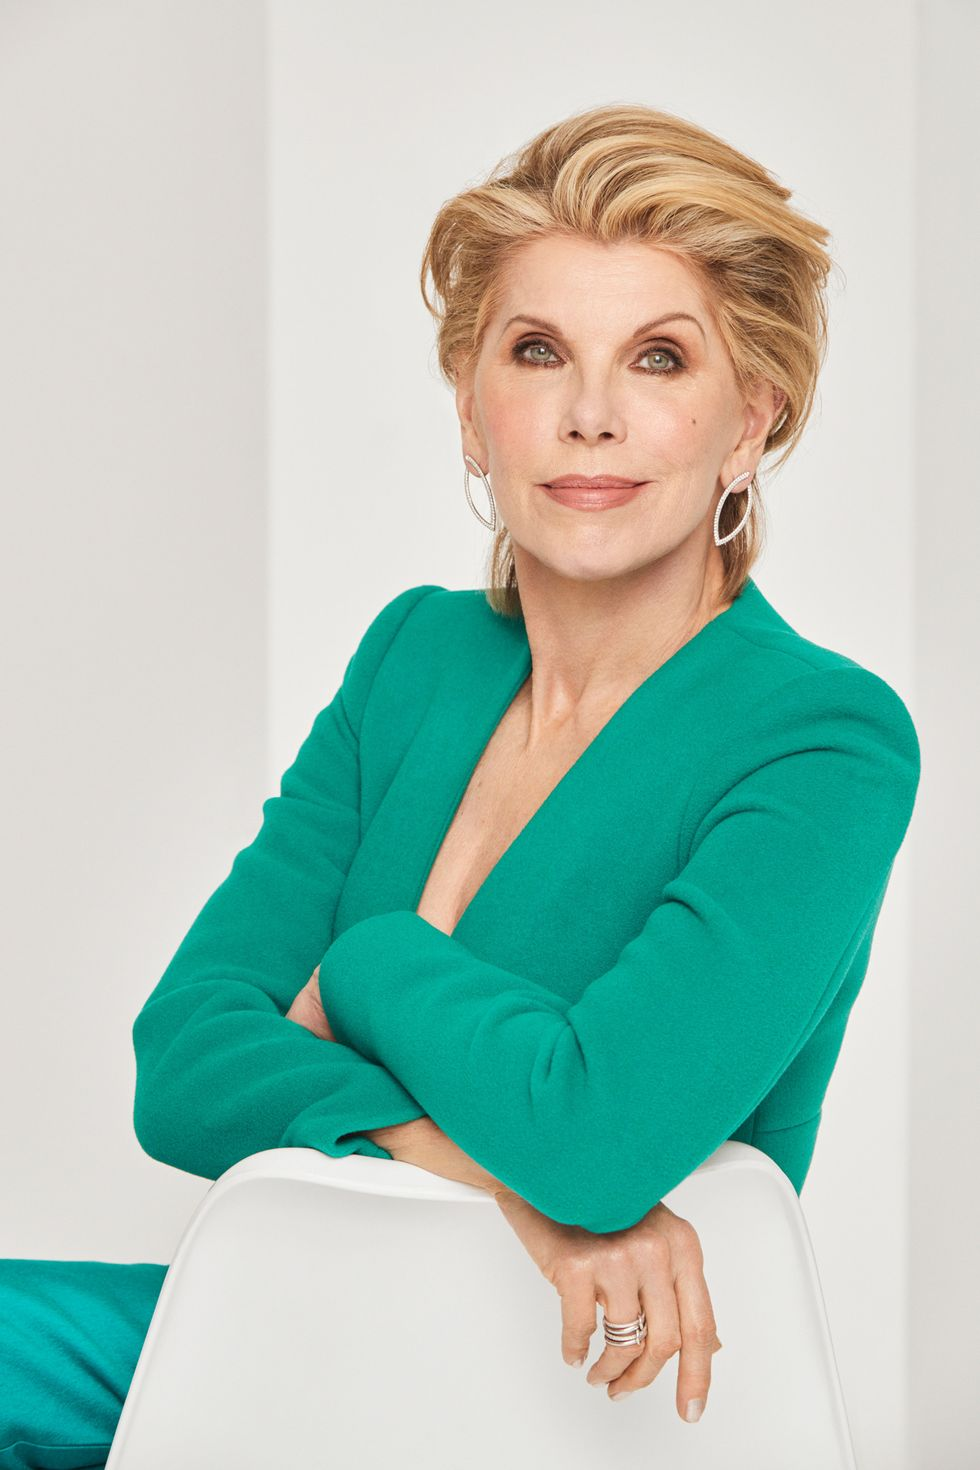 Christine Baranski in a green jacket leaning against a white chair.